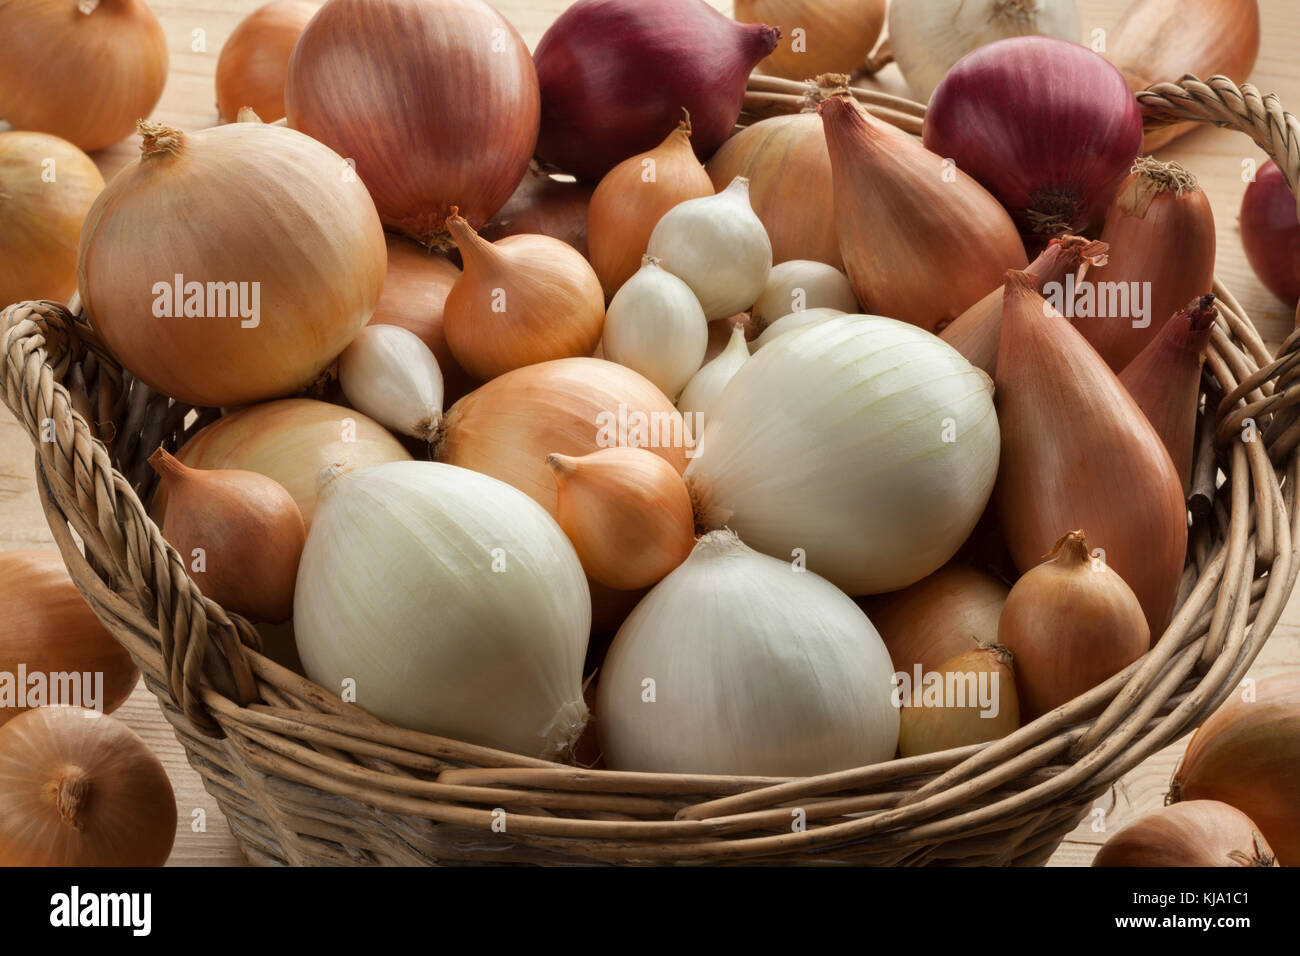 Diversity of fresh raw onions in a basket - Stock Image